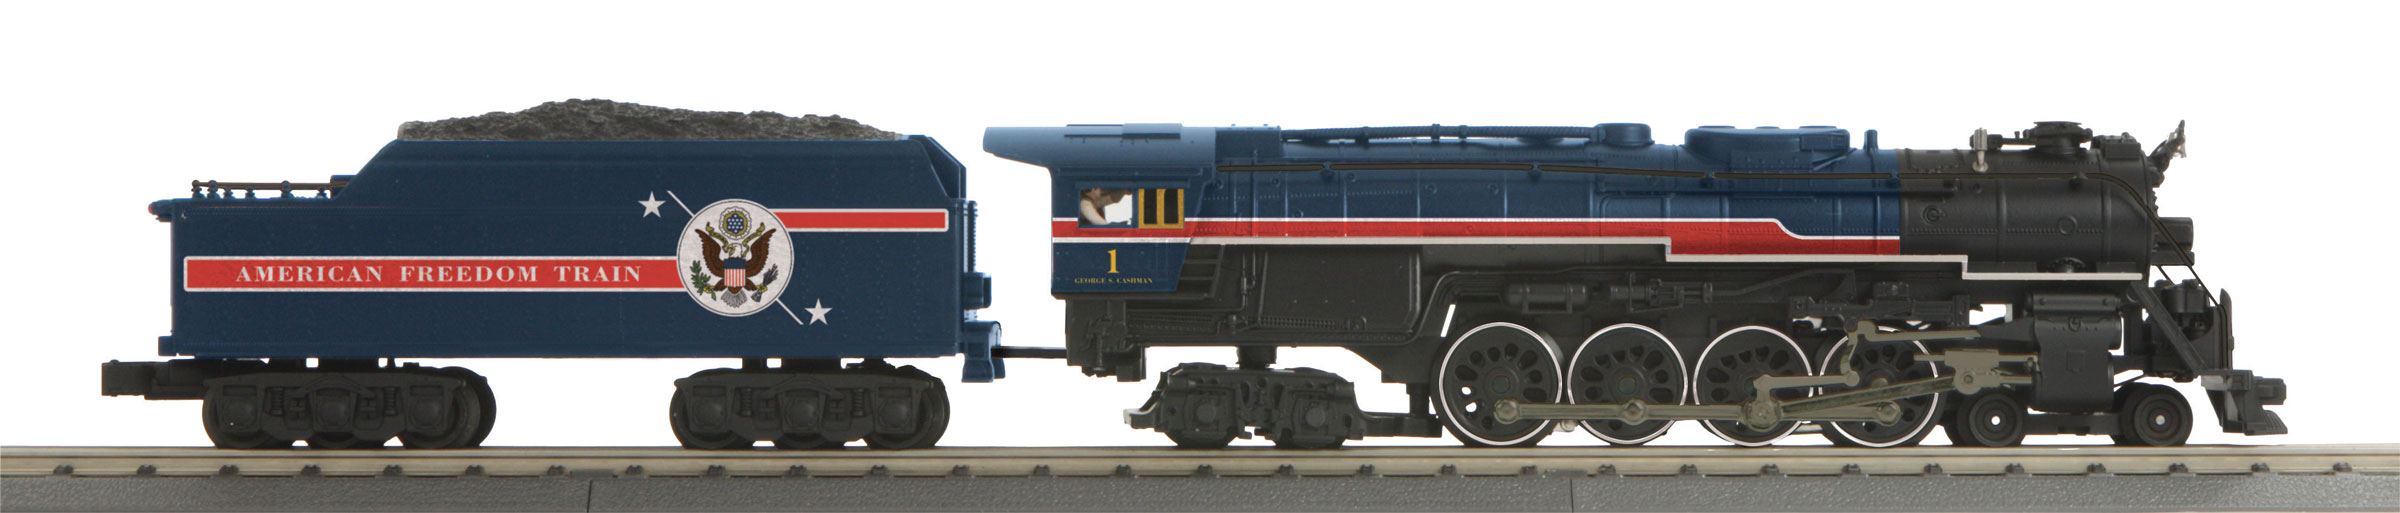 MTH 3017961 O 4-8-4 Northern 3-Rail with Proto-Sound 3.0 Imperial American Freedom Train 1 507-3017961